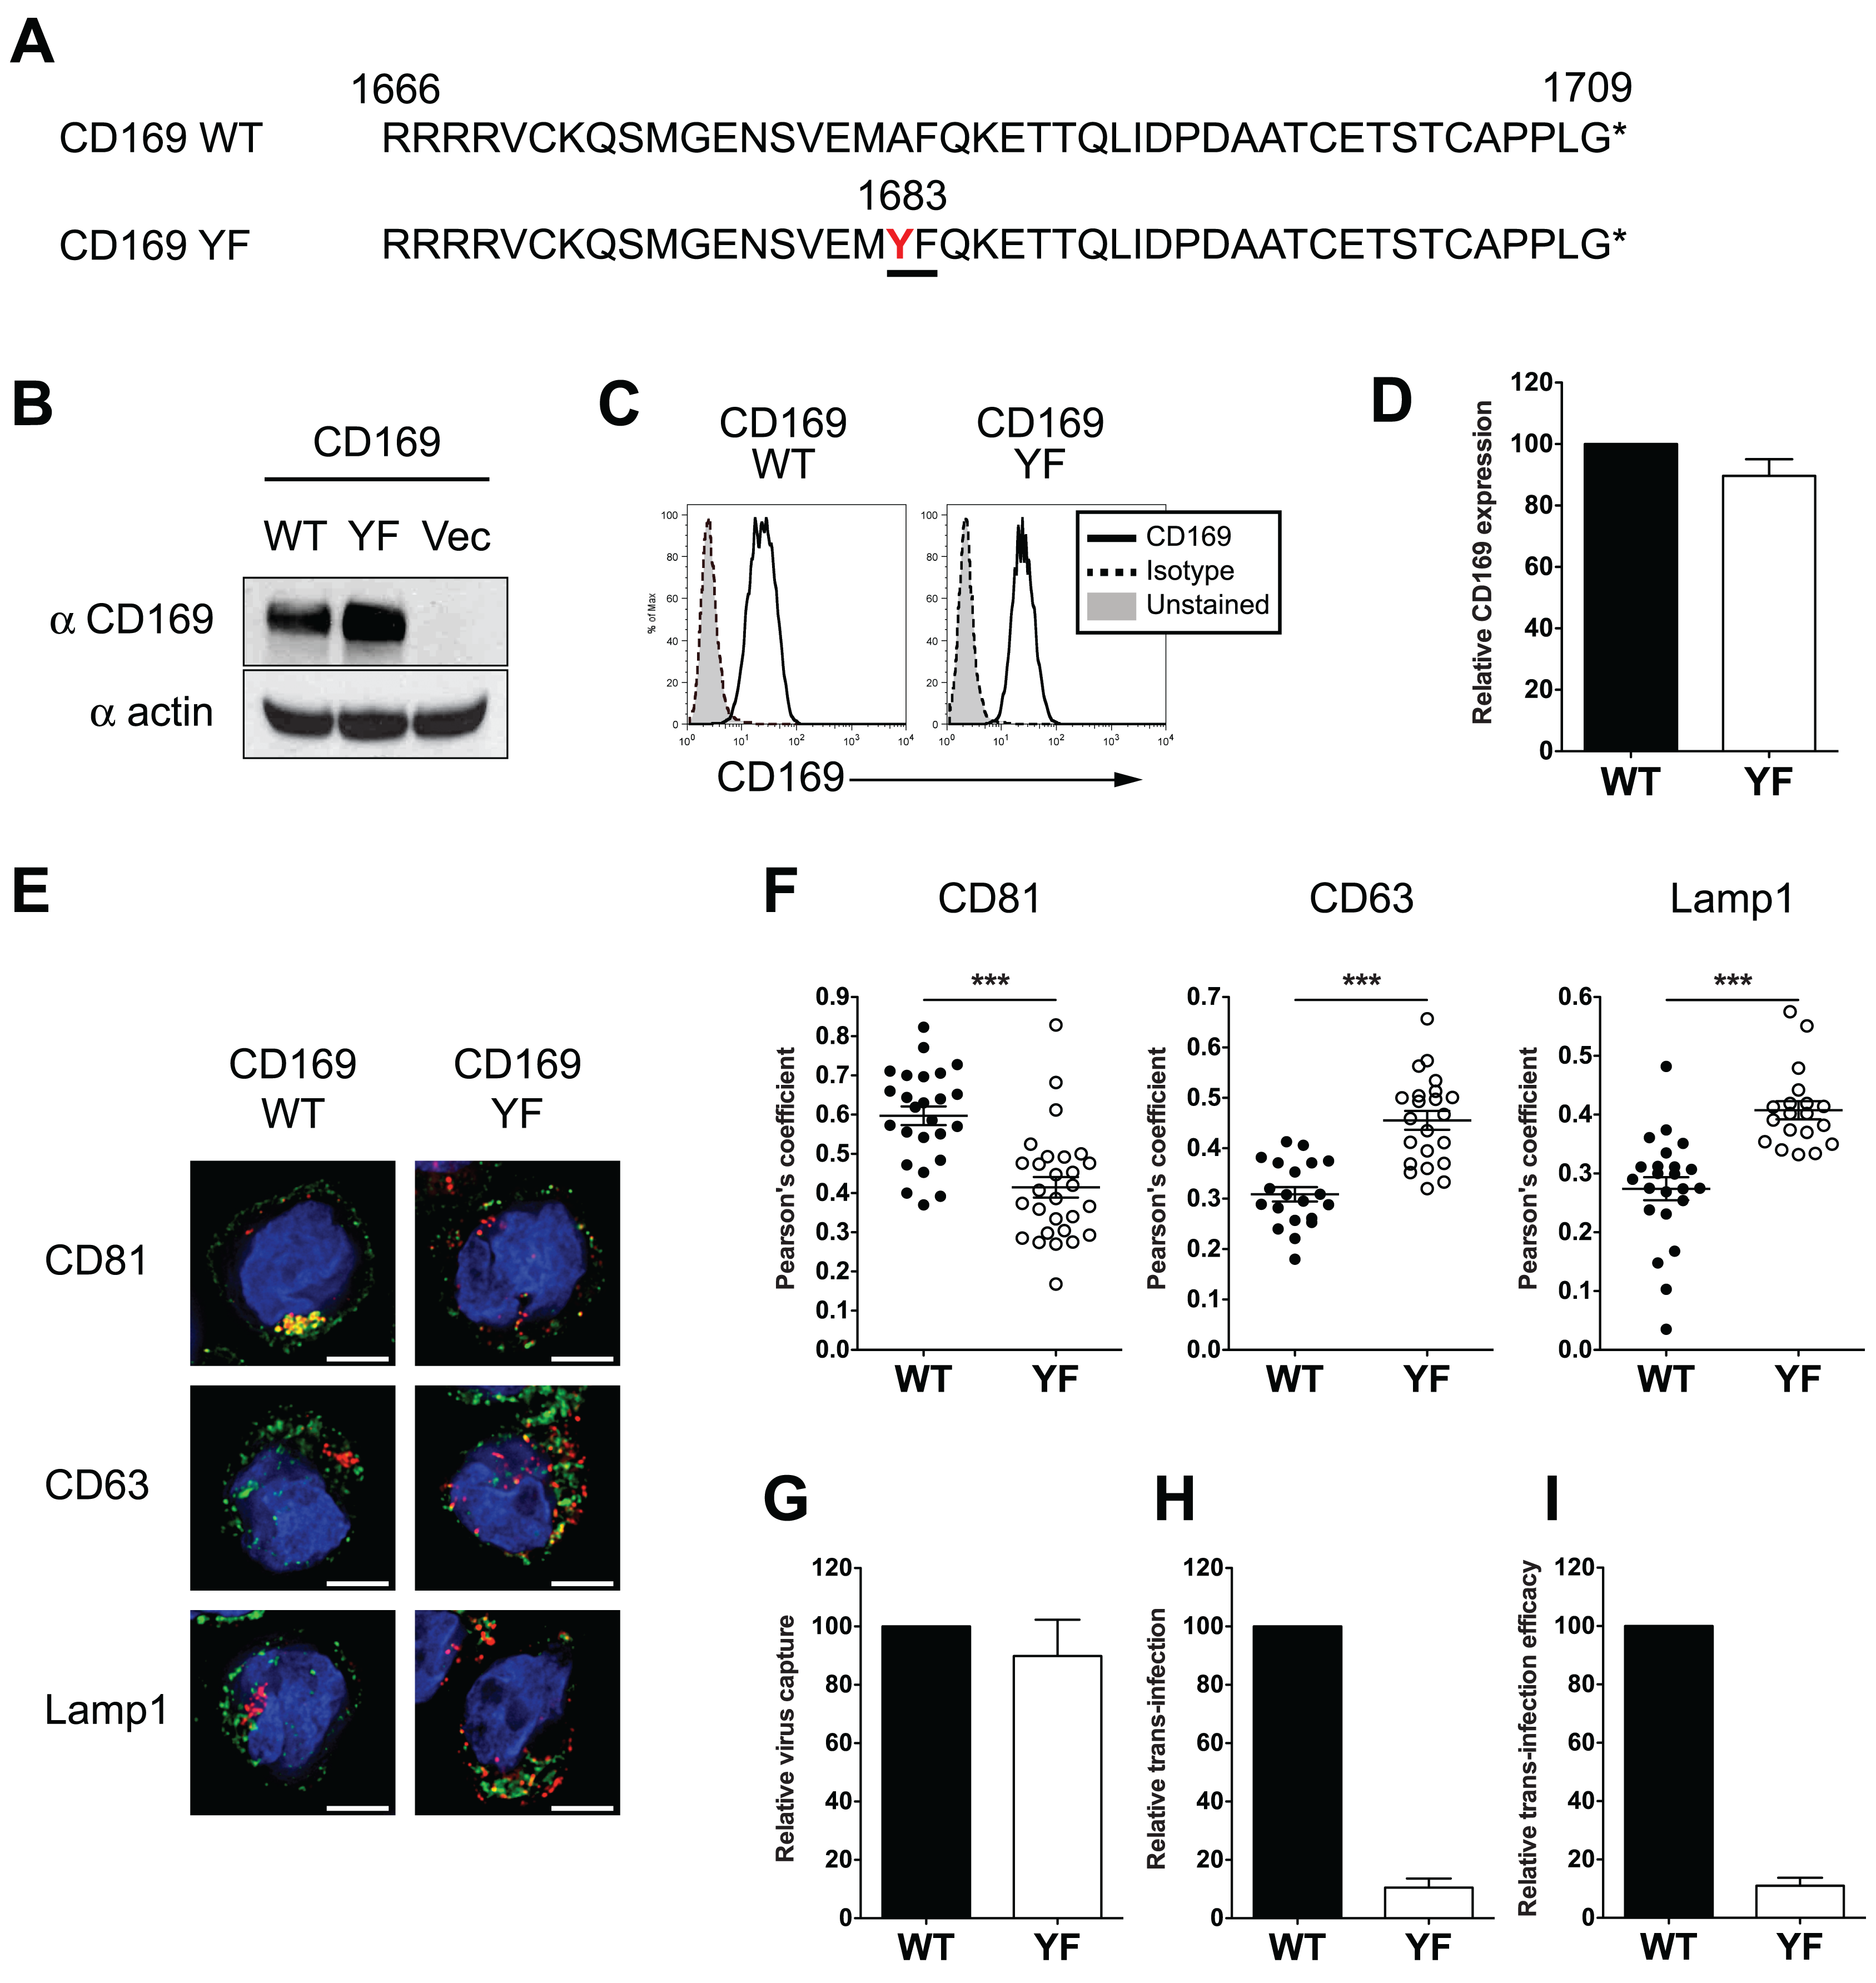 Introduction of a di-aromatic motif in CT of CD169 results in endocytosis of HIV-1 particles and attenuation of CD169-mediated trans-infection.